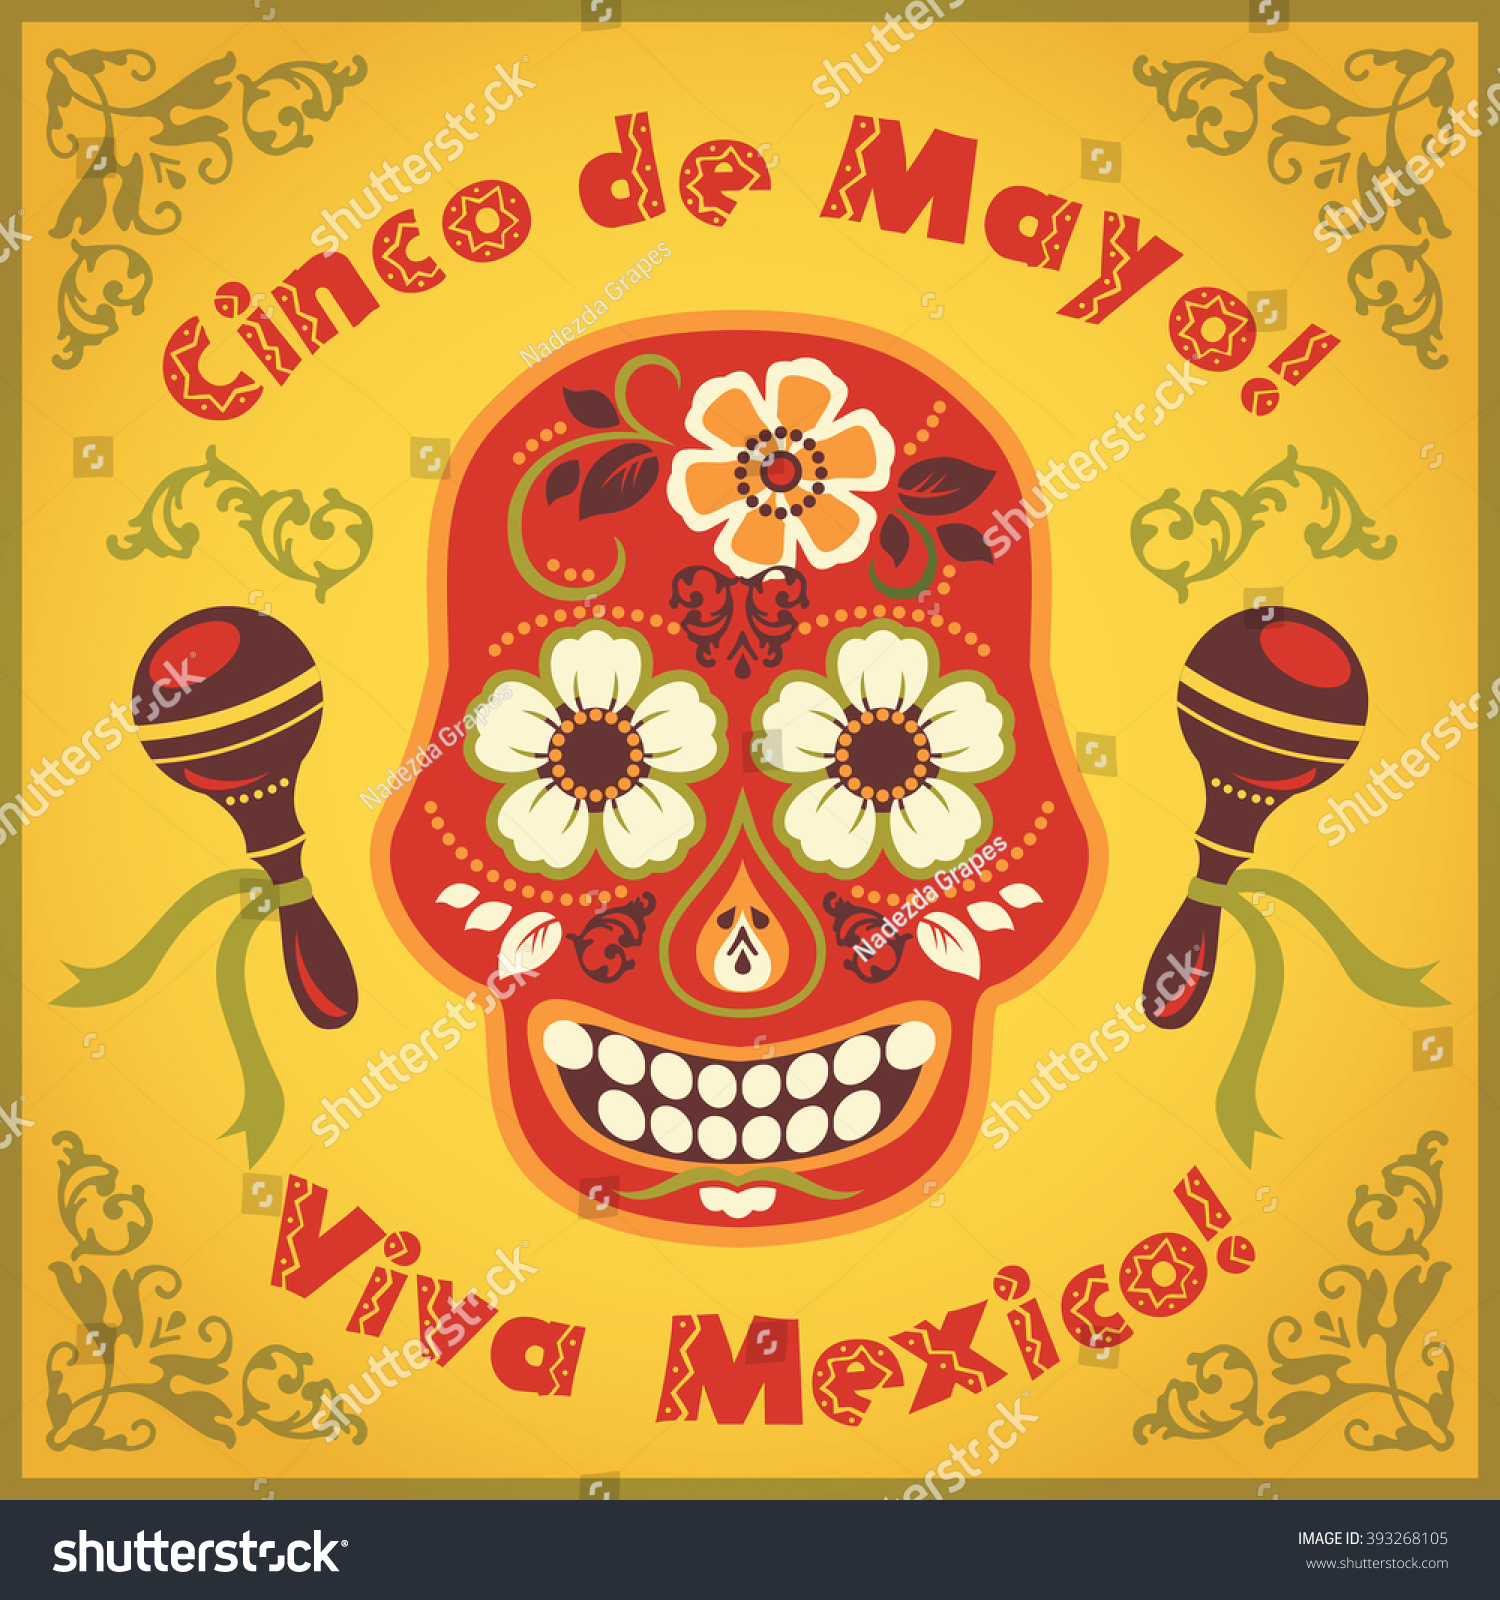 Traditional Mexican Symbols | www.imgkid.com - The Image ...